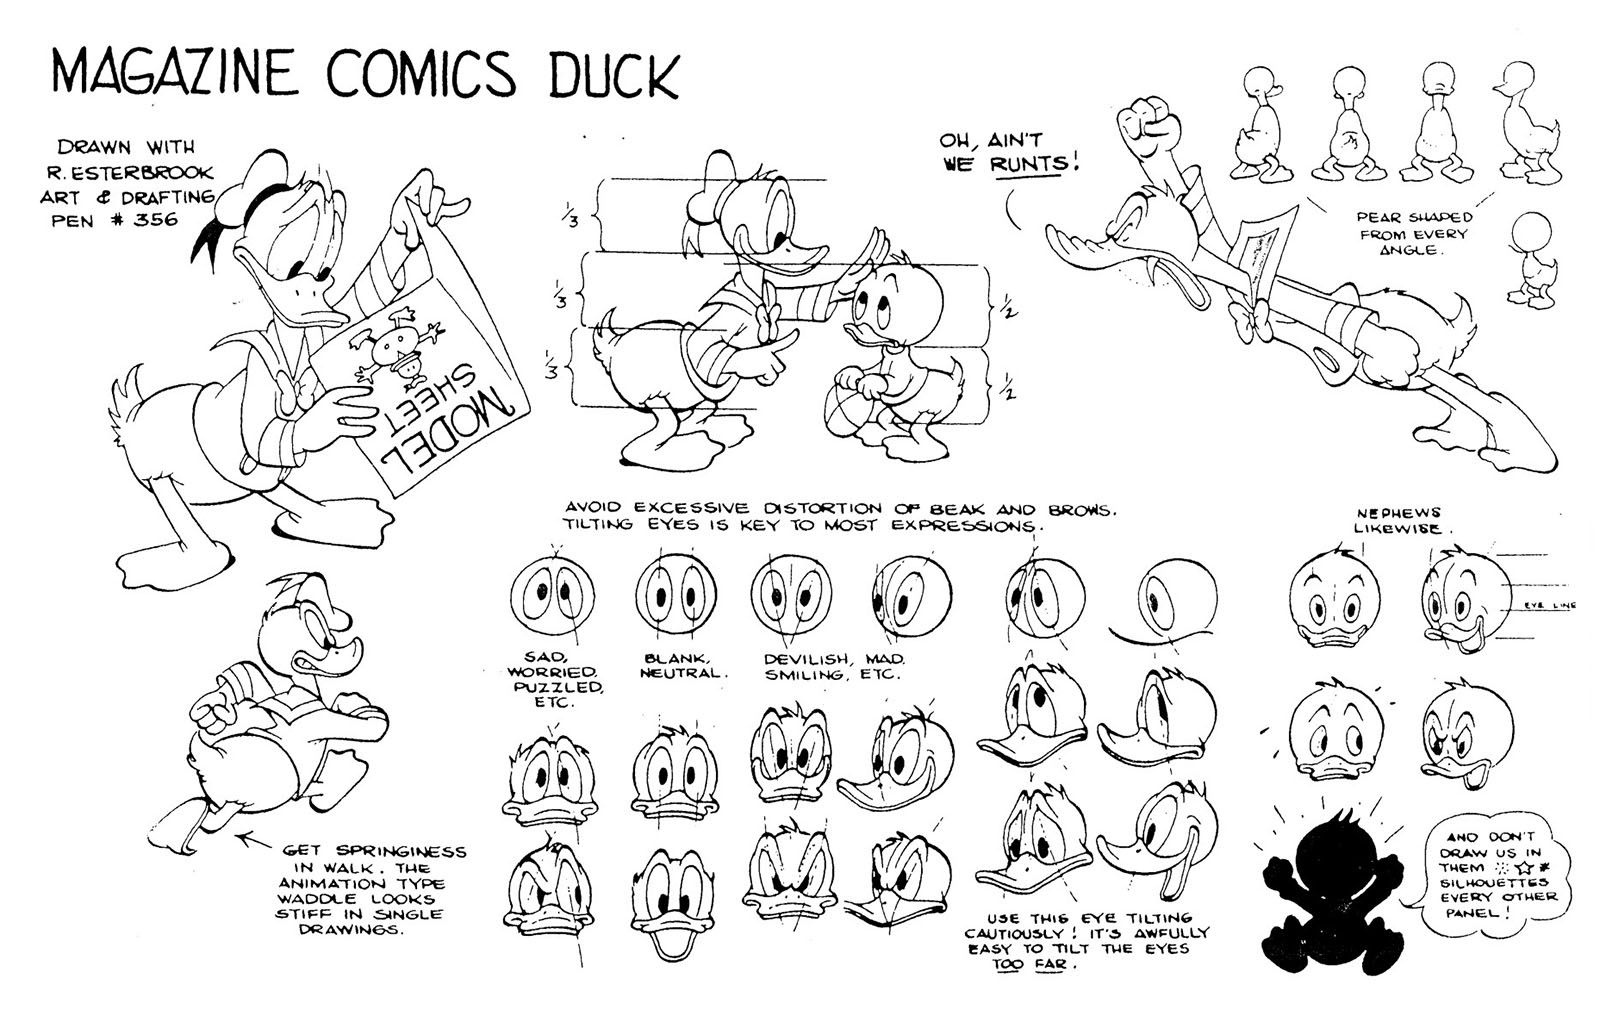 Donald Duck Modelsheet Created By Carl Barks For Other Artists